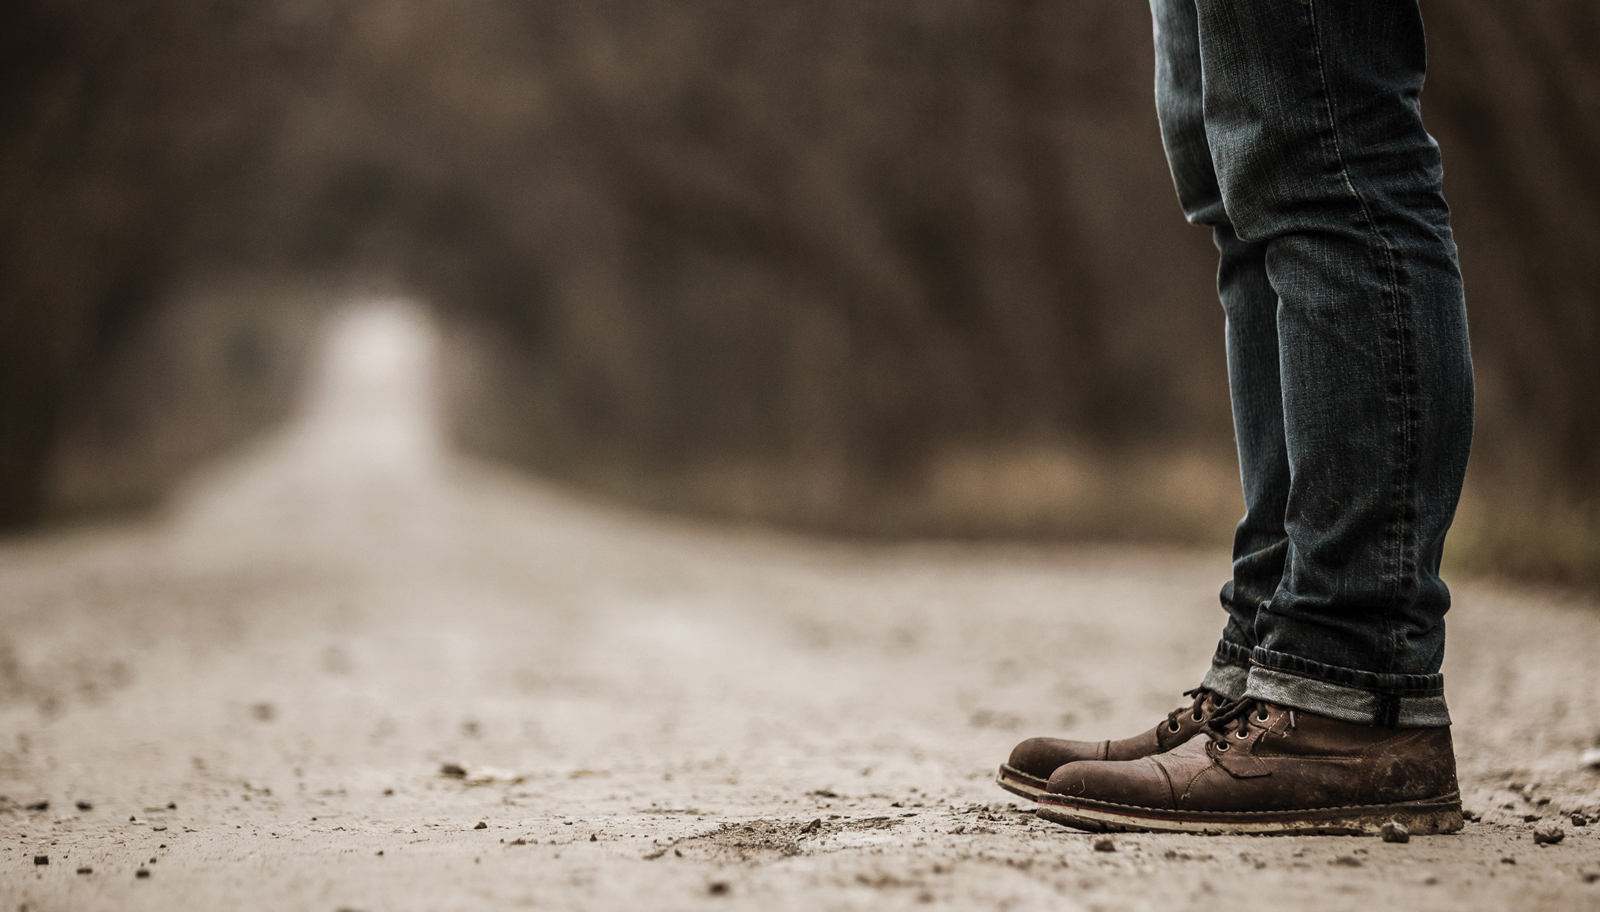 Man with brown boots standing at a crossroads, deciding whether to repent of not deal with repentance.